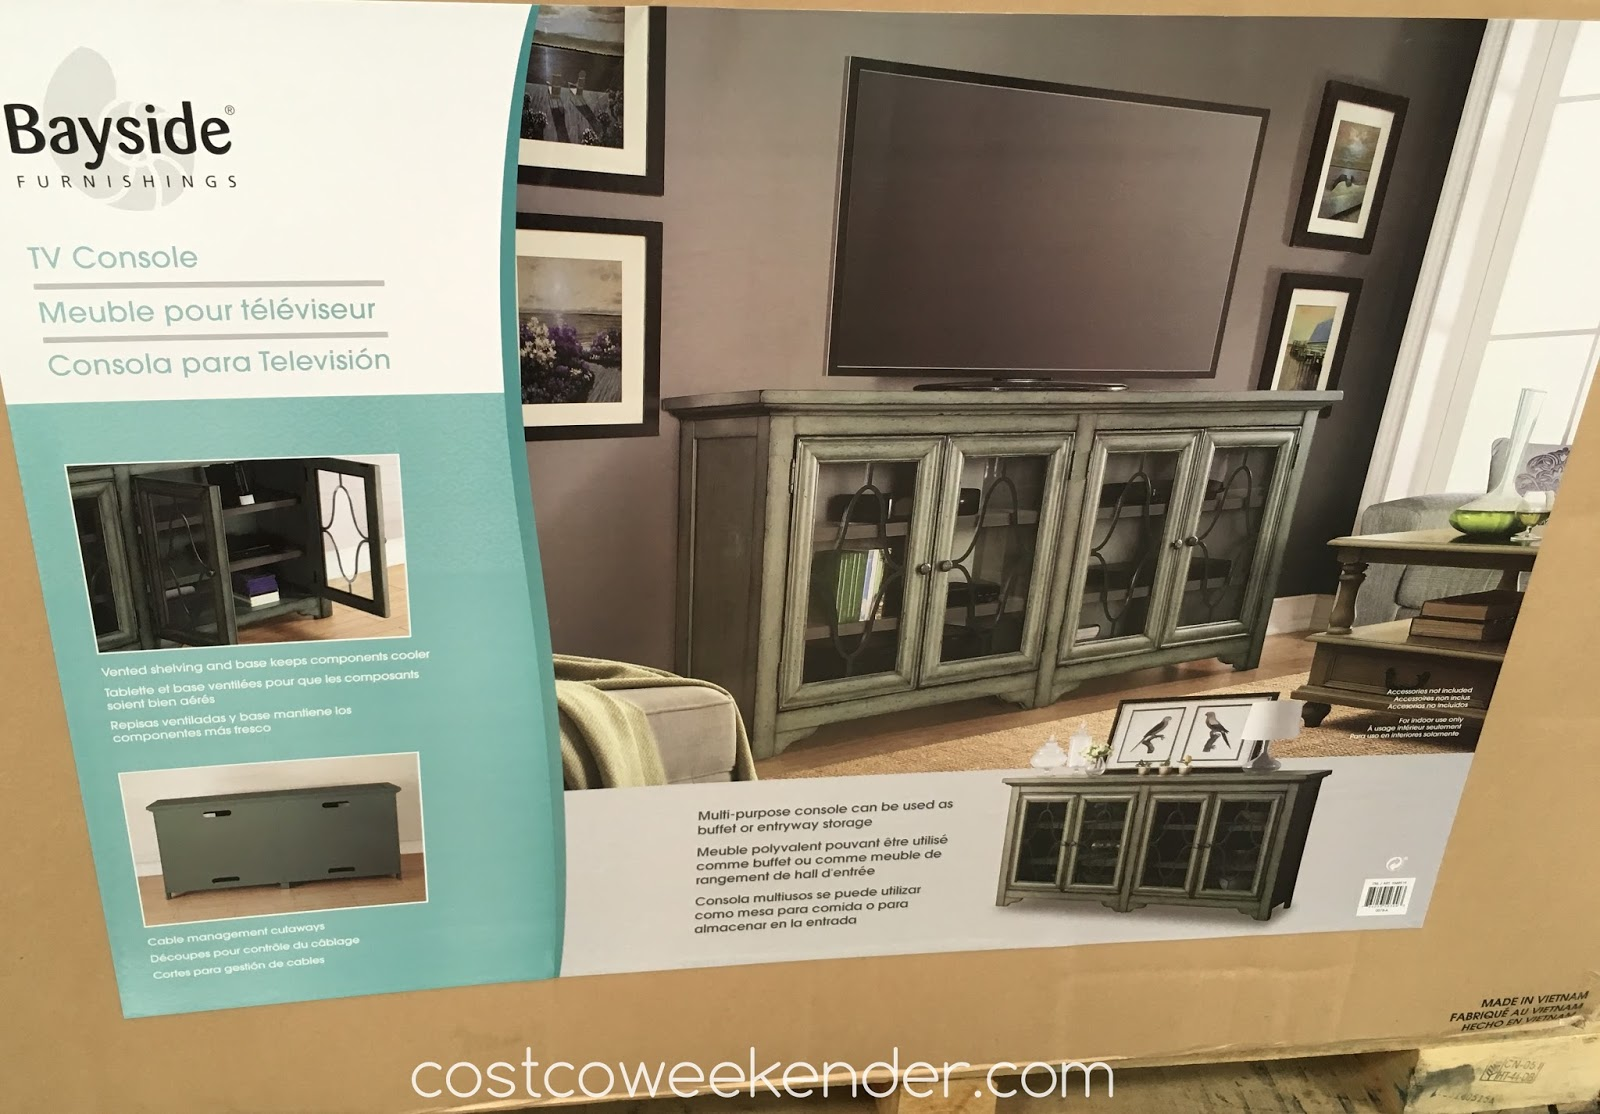 Bayside Furnishings Accent Tv Console Costco Weekender